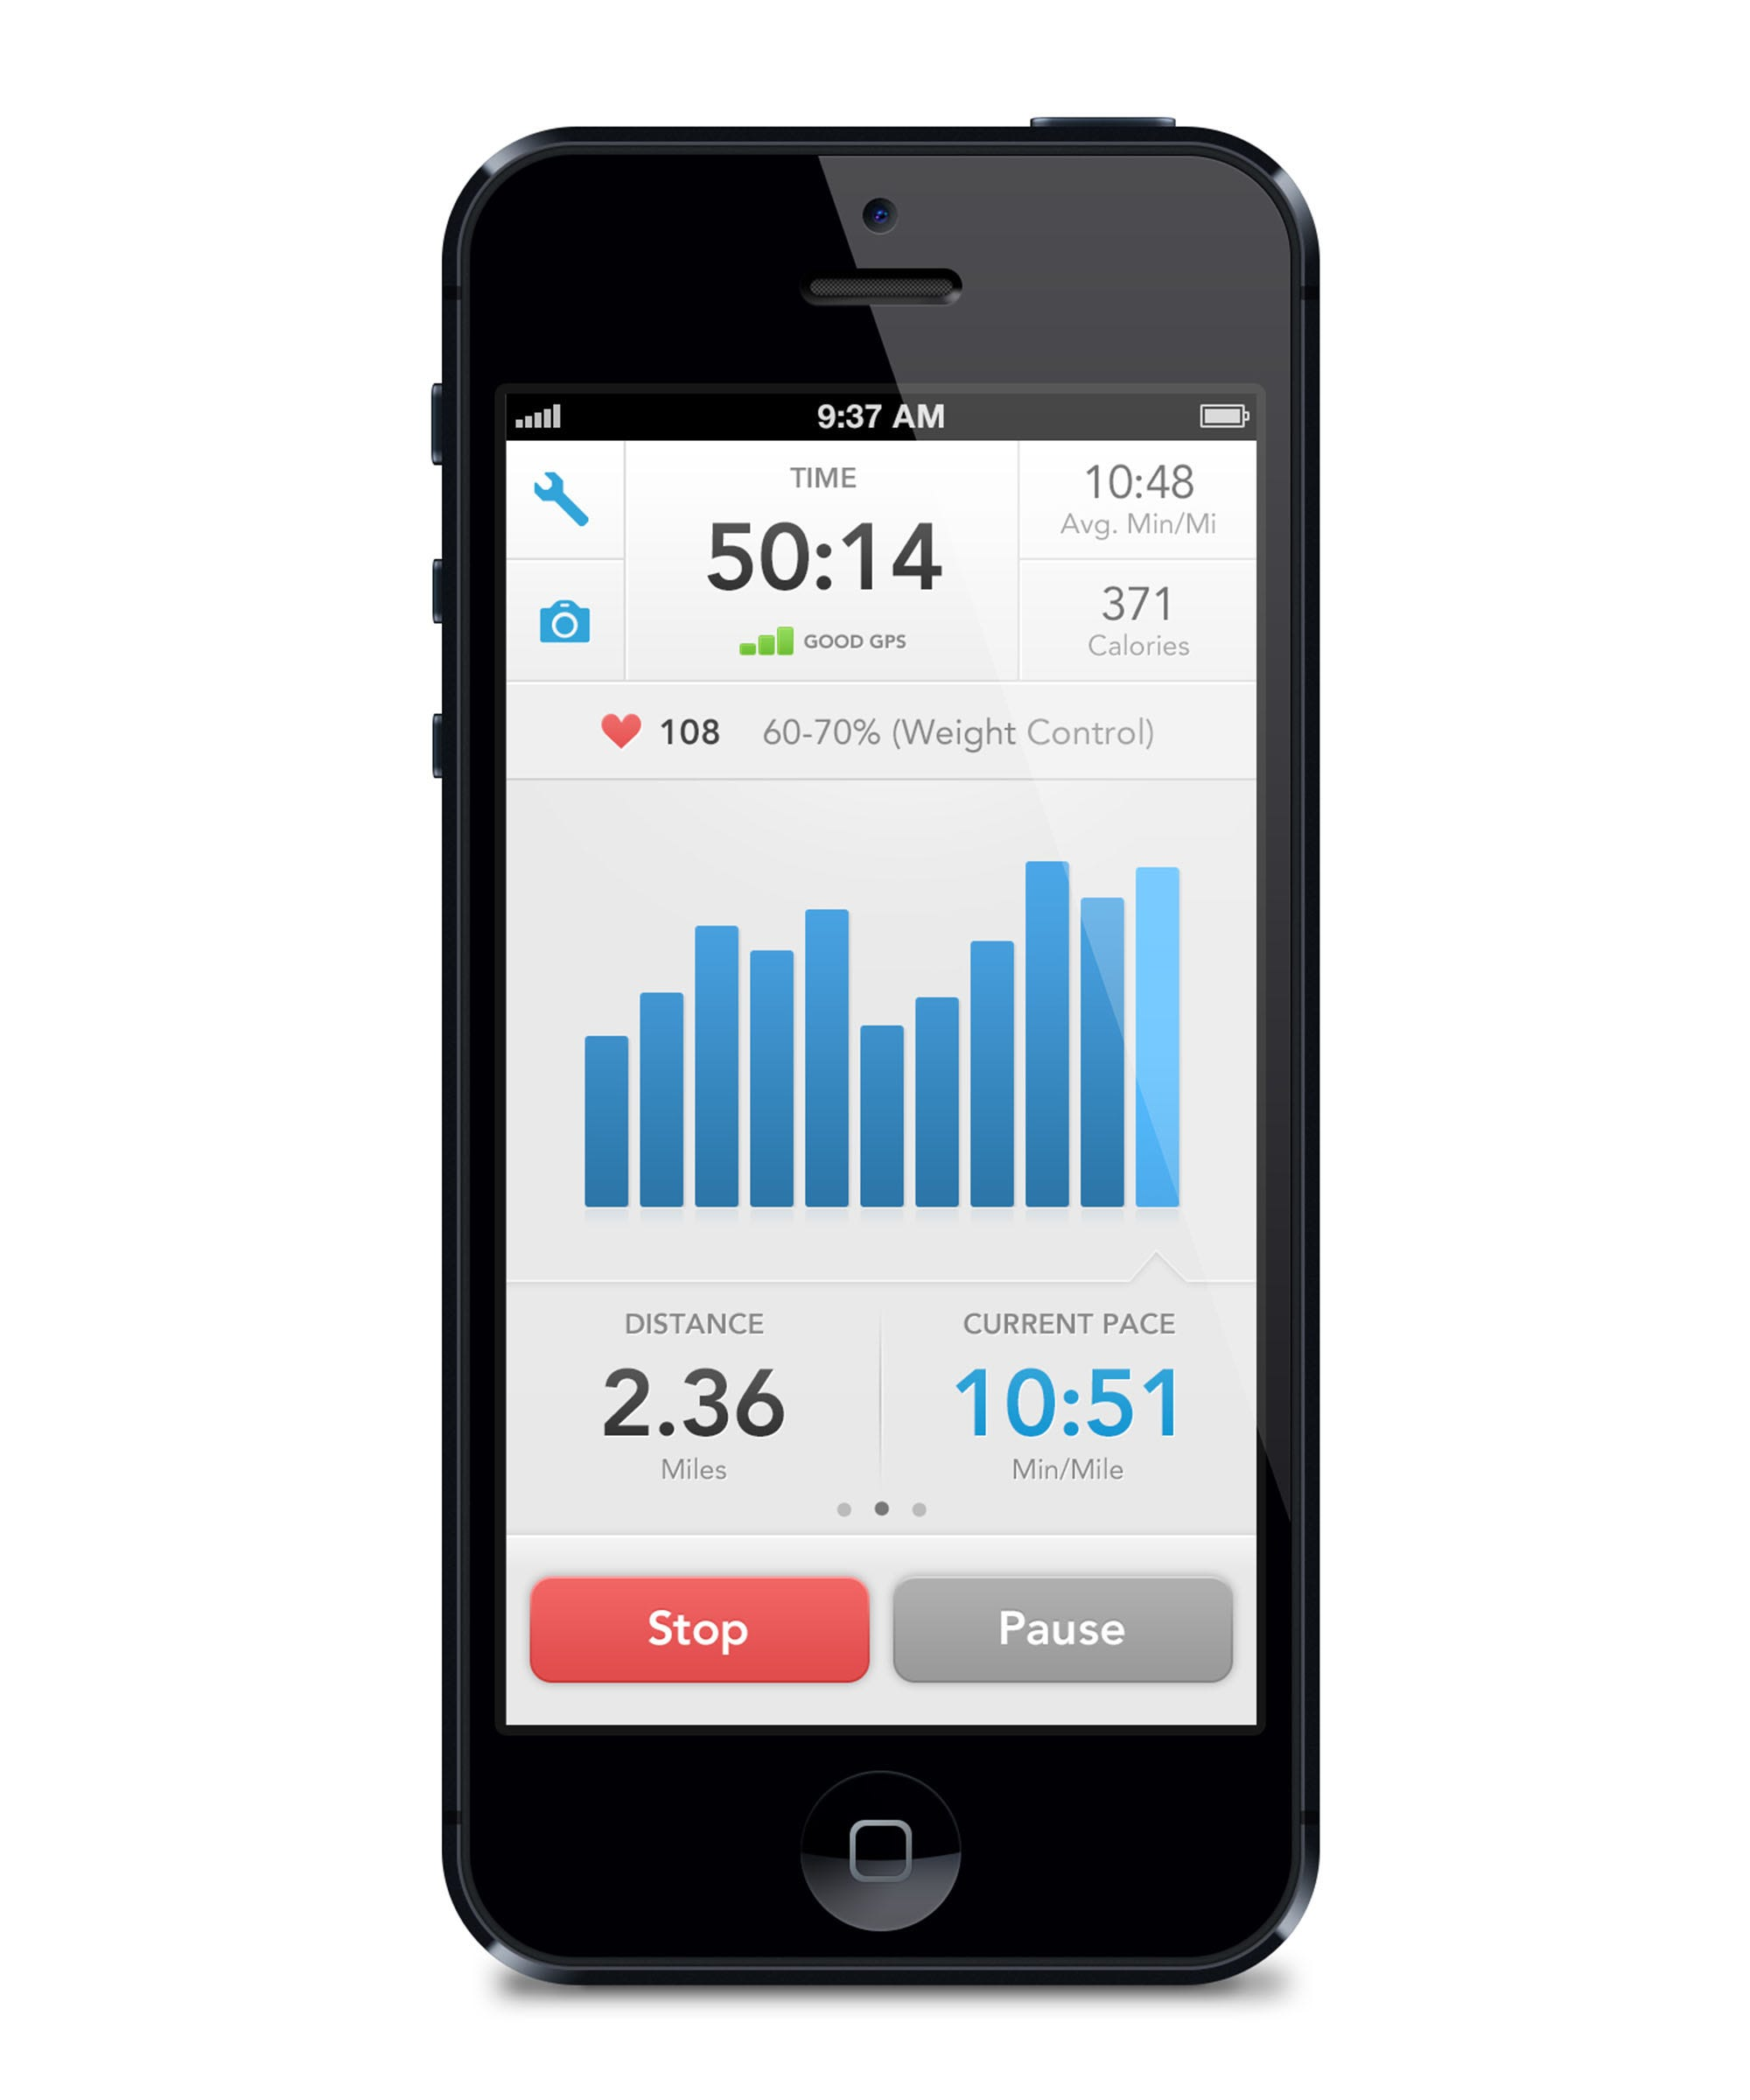 Couch To 5k Xls Best Running Apps 2018 Couch To 5k Fitness Tracking